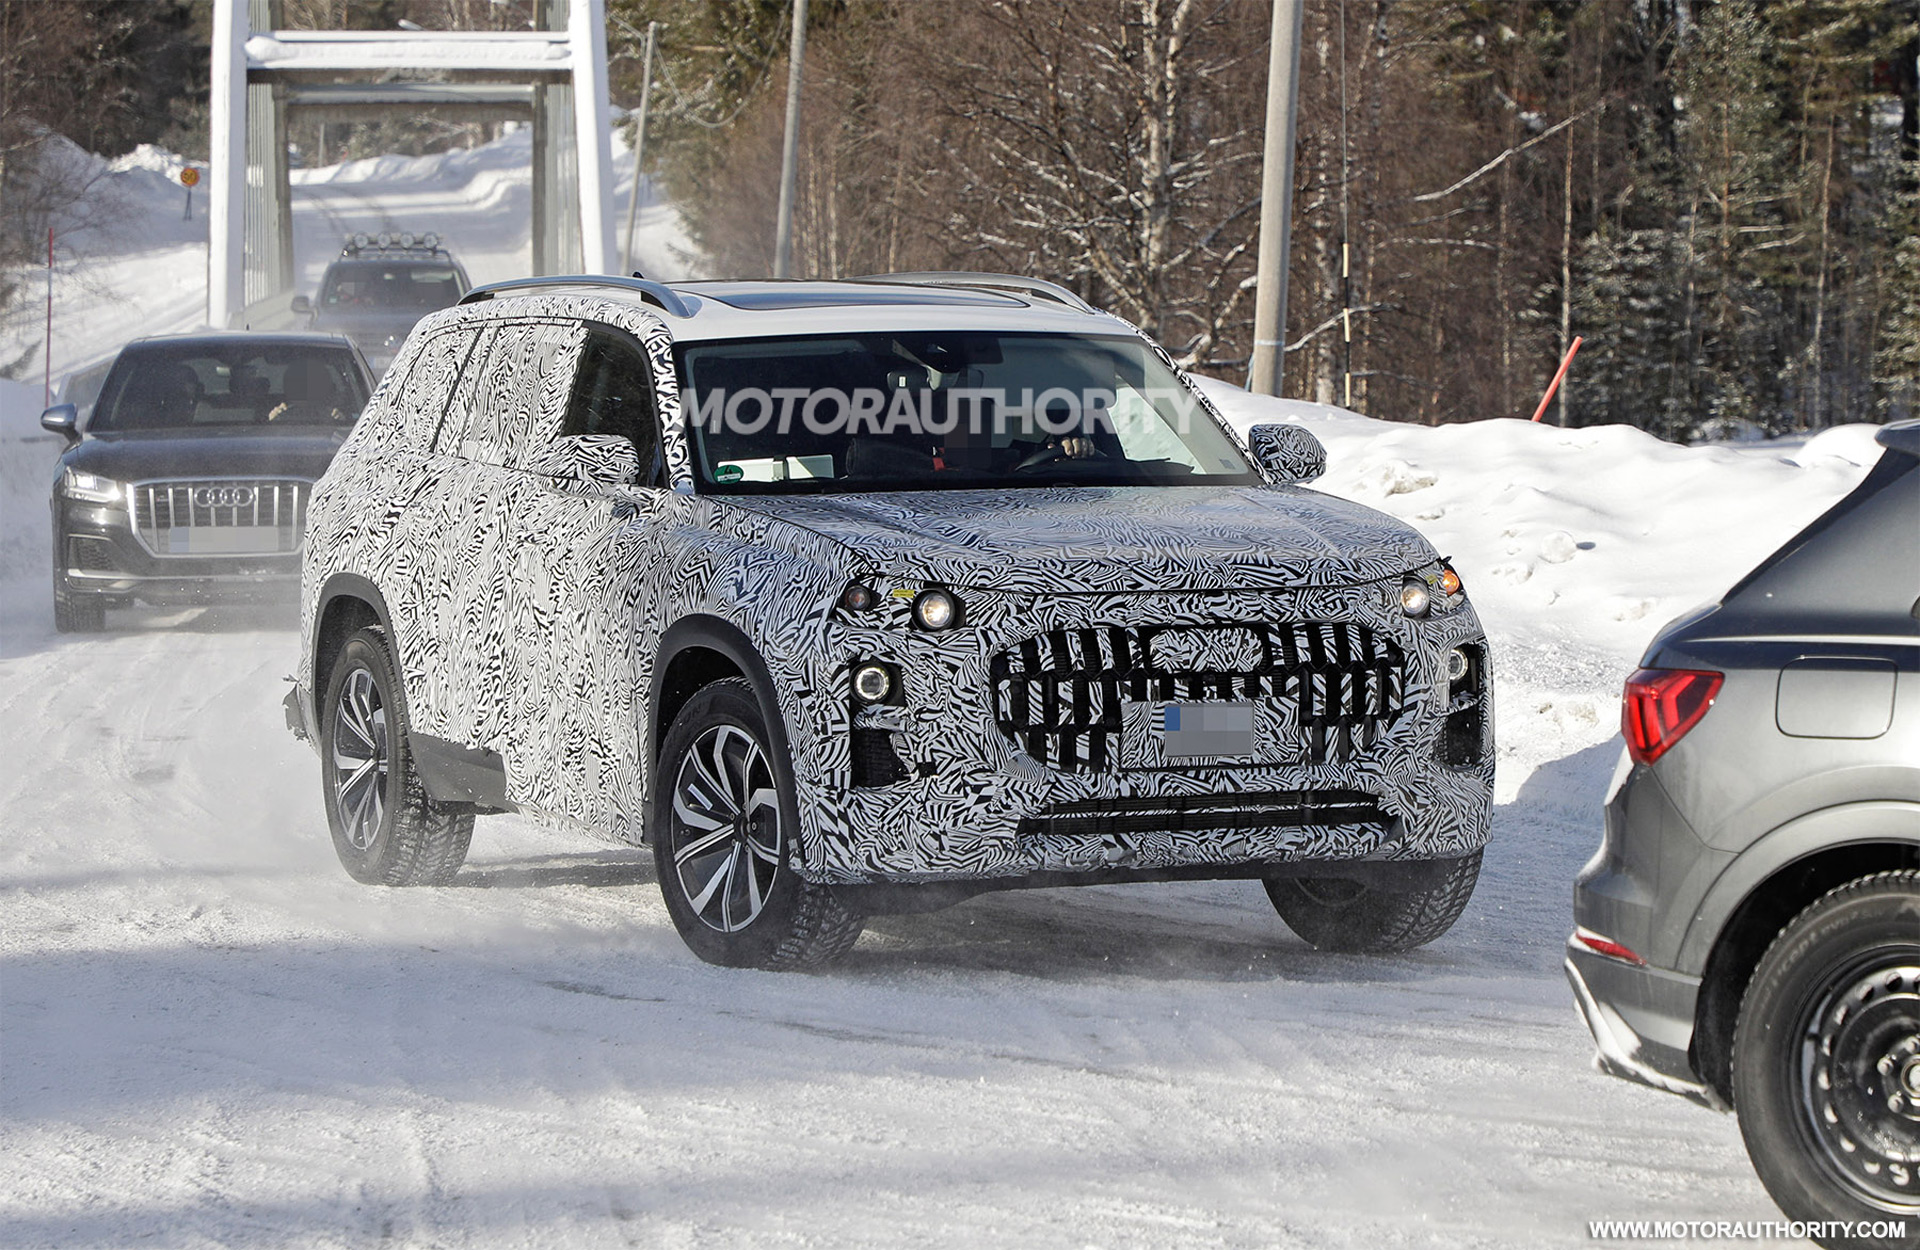 2023 Audi Q9 spy shots: Full-size SUV in the works?